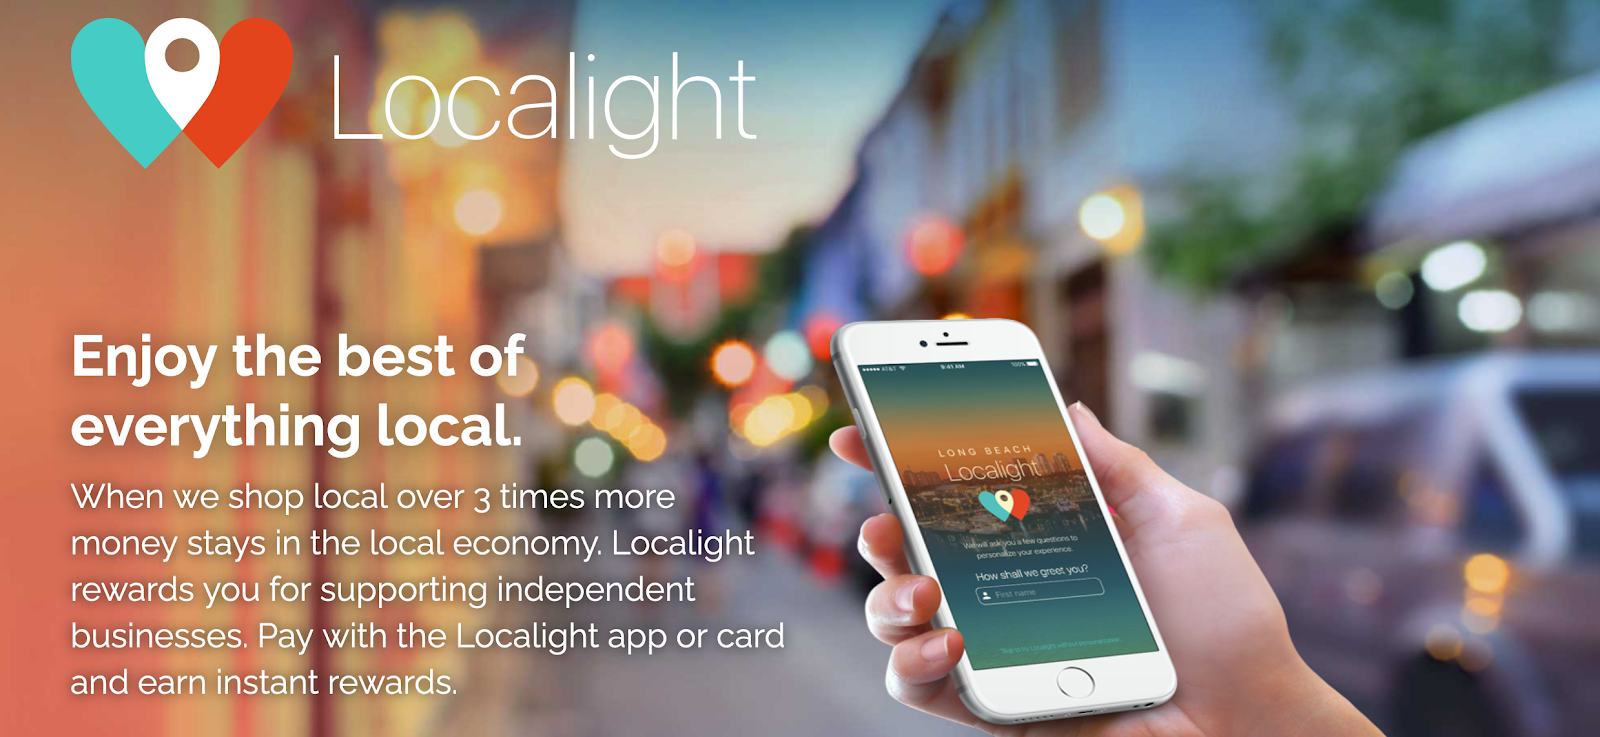 Localight website banner | Influencer programs fro collab opps